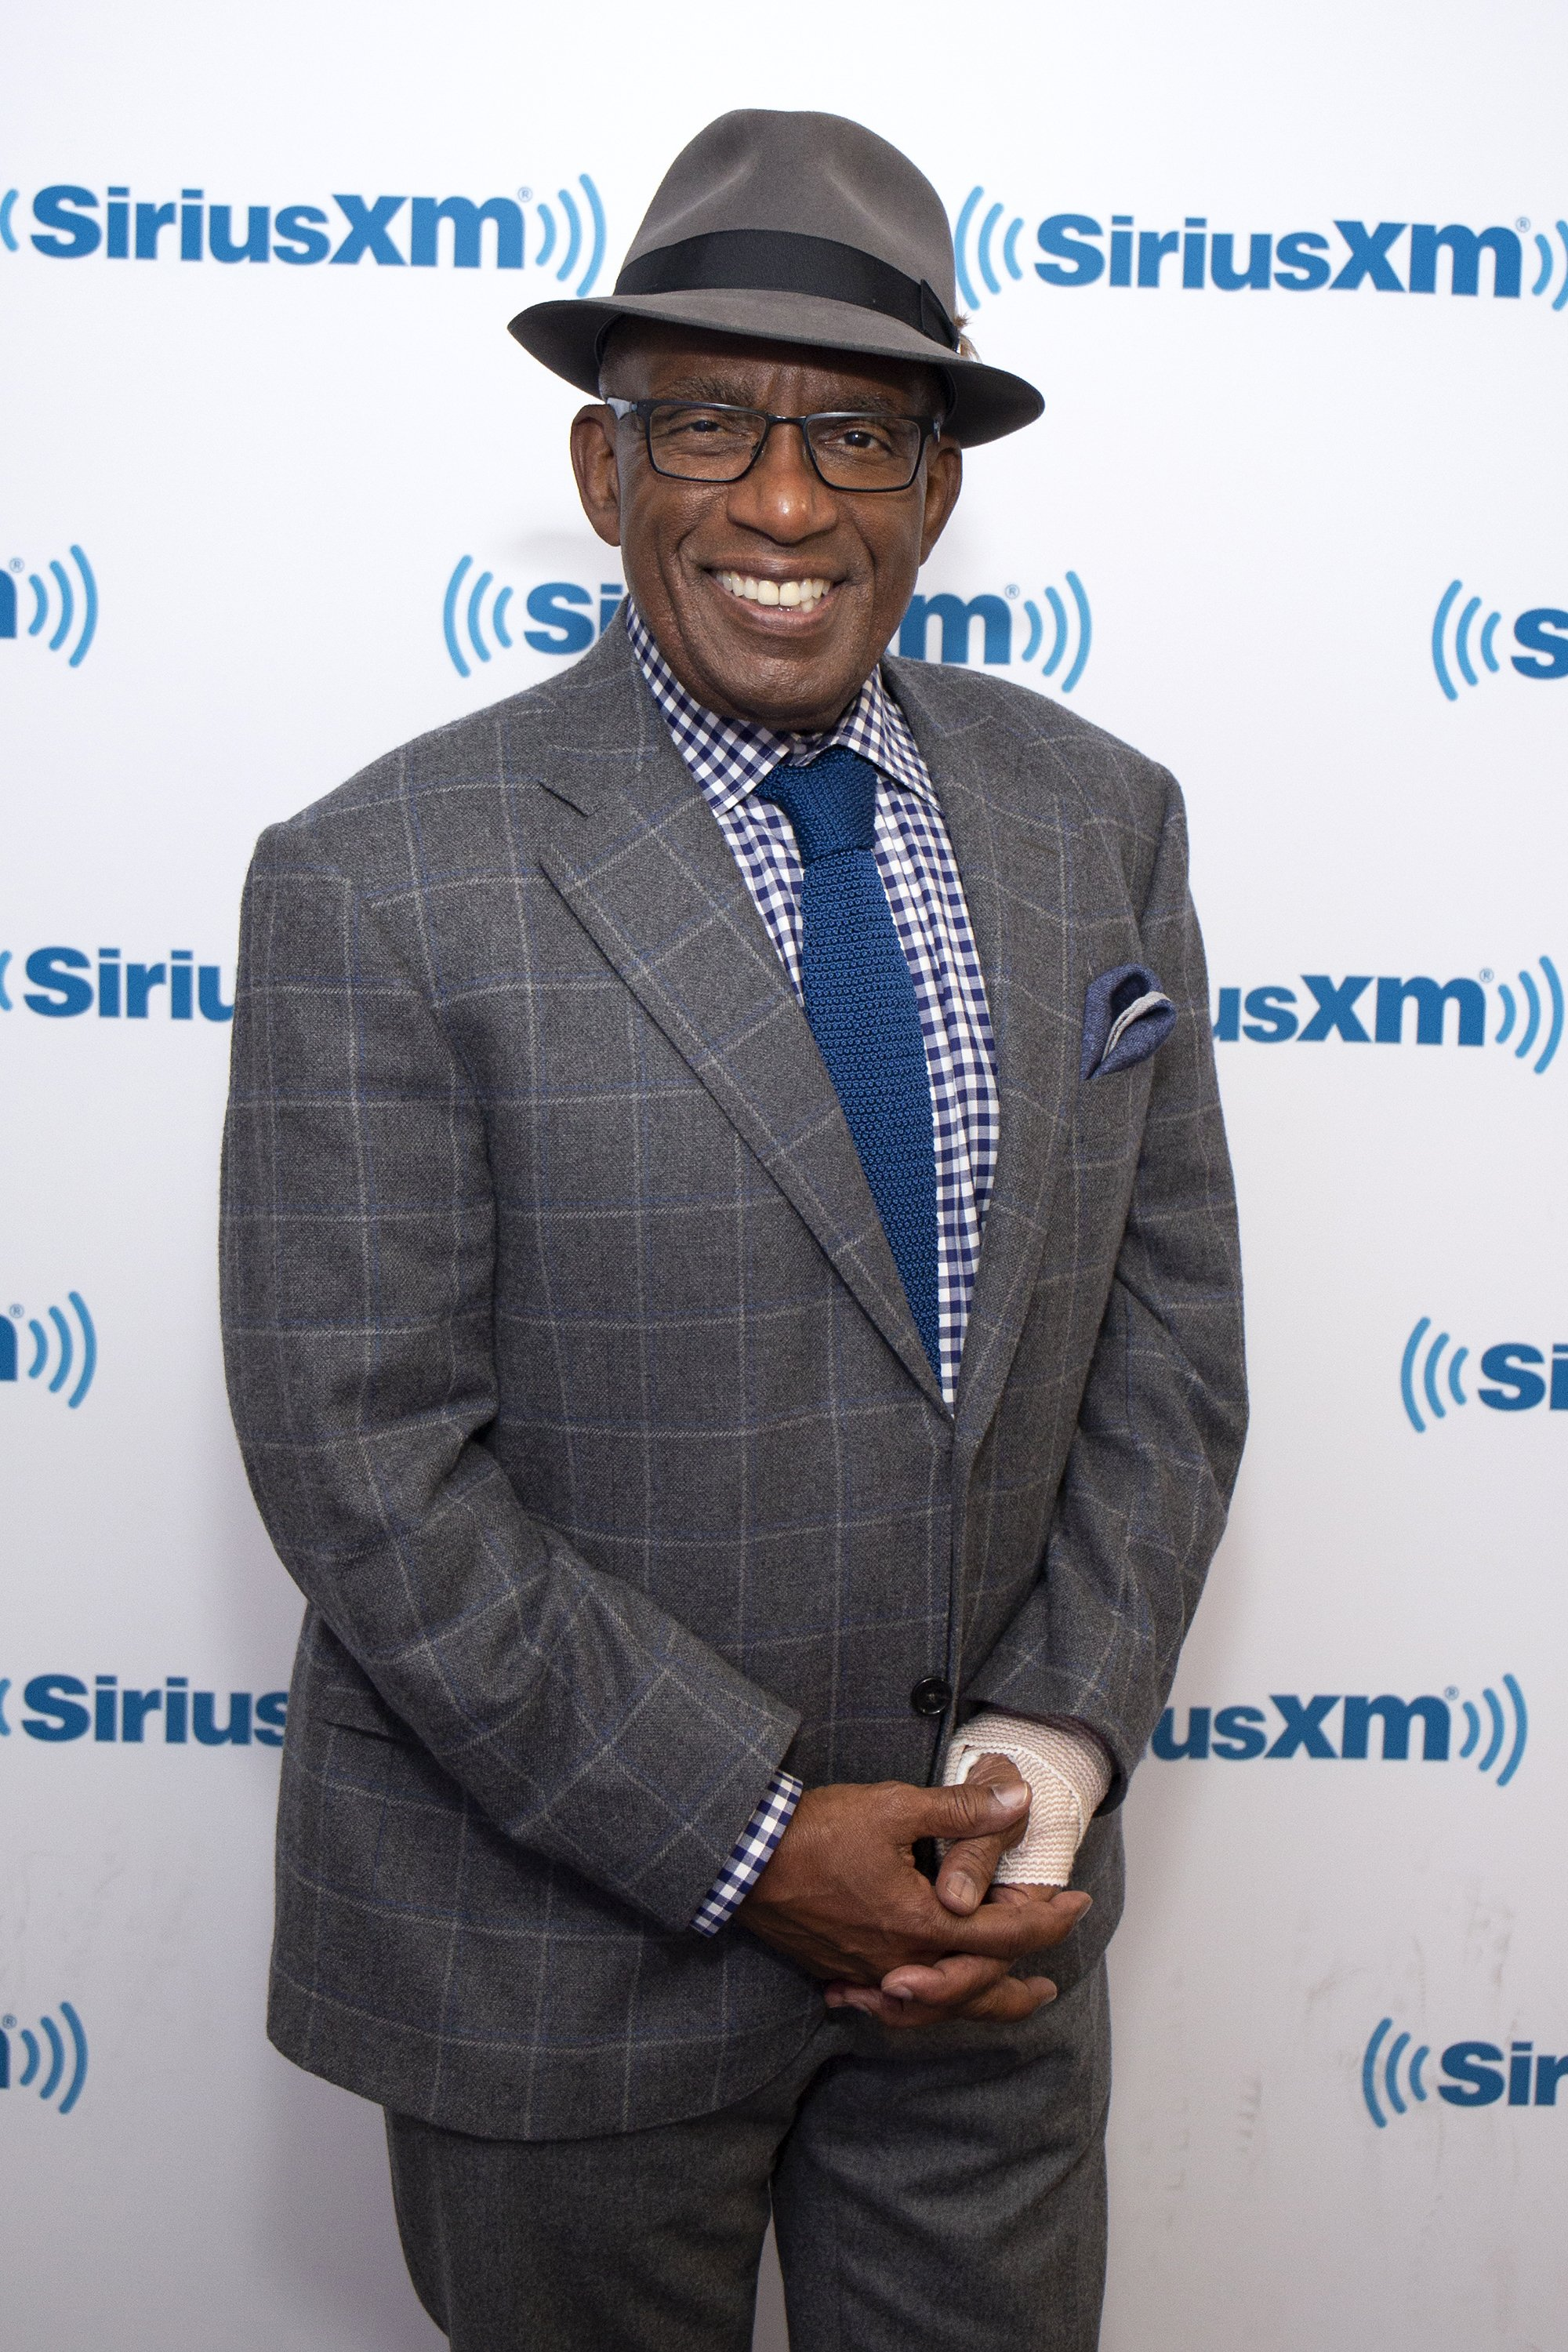 Al Roker on October 2, 2018 in New York City | Photo: Getty Images